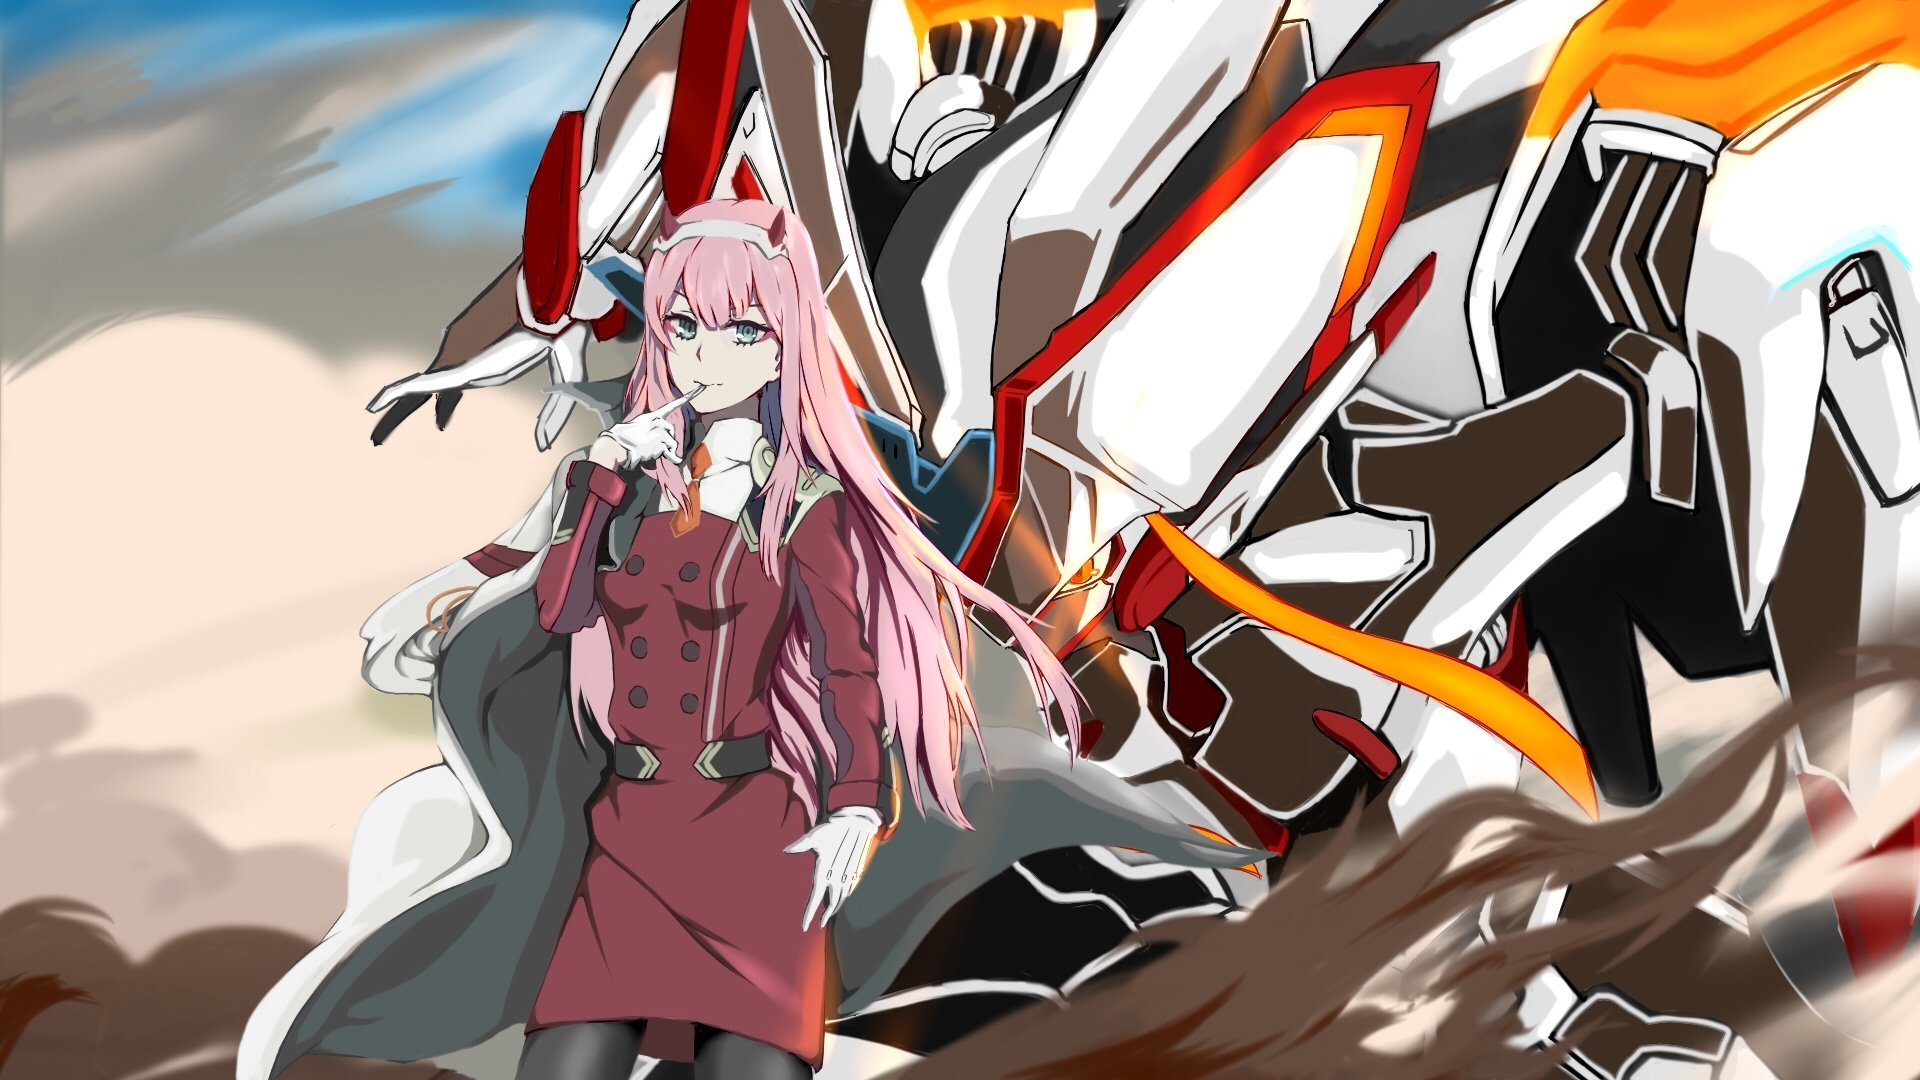 Darling In The Franxx Wallpaper 1920x1080 Posted By Michelle Walker